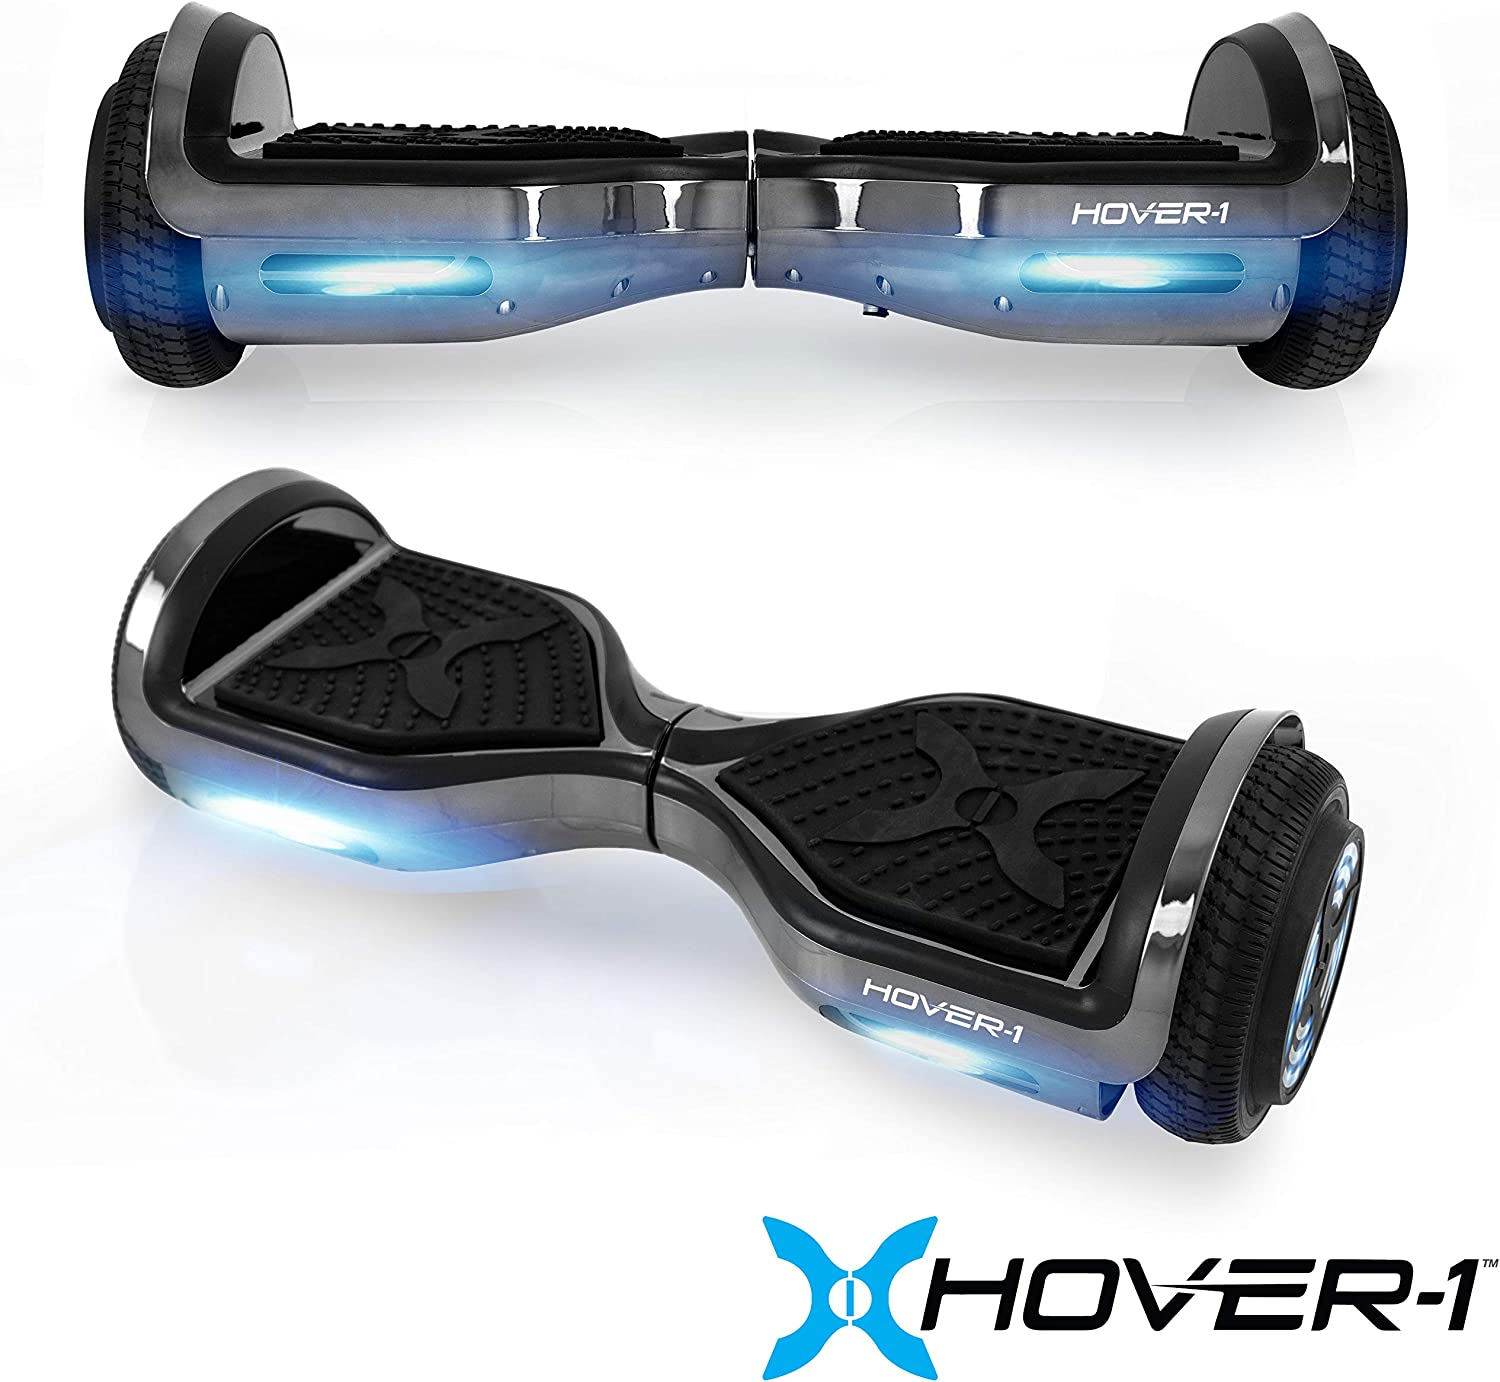 Hover-1 Chrome Electric Hoverboard Scooter Gun Metal - 3